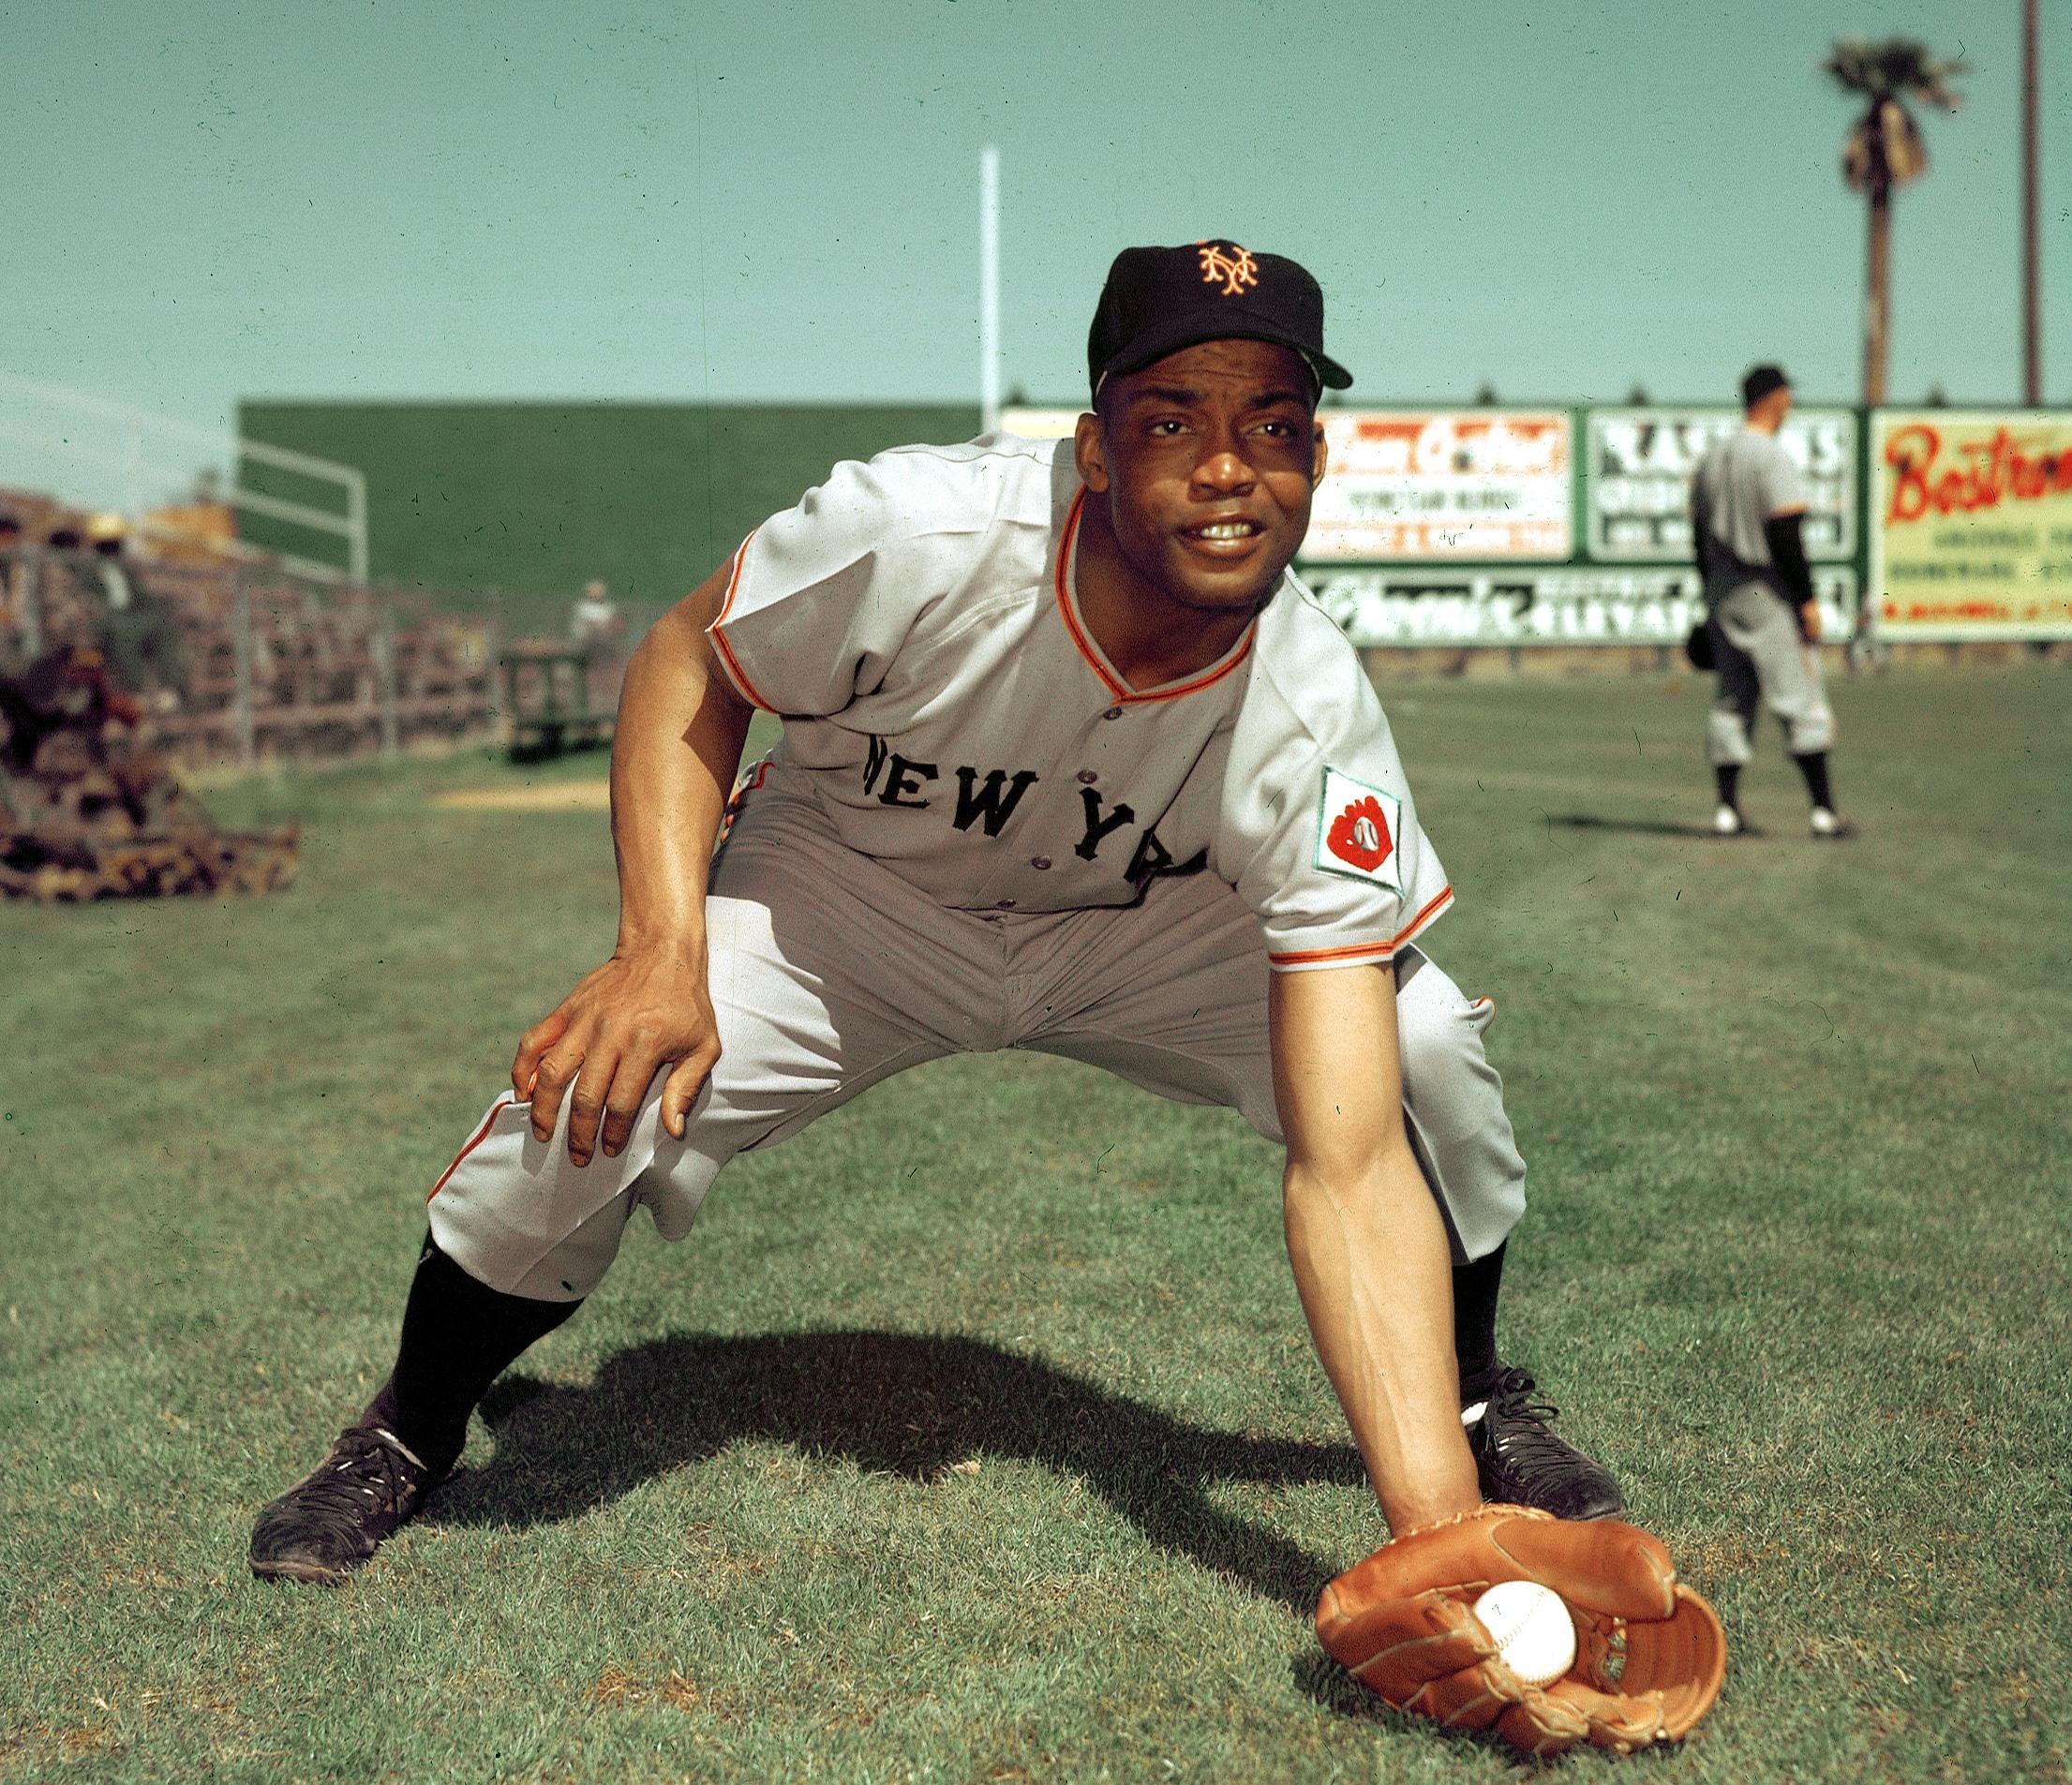 Hall of Fame baseball player Monte Irvin dies at 96 | The ...